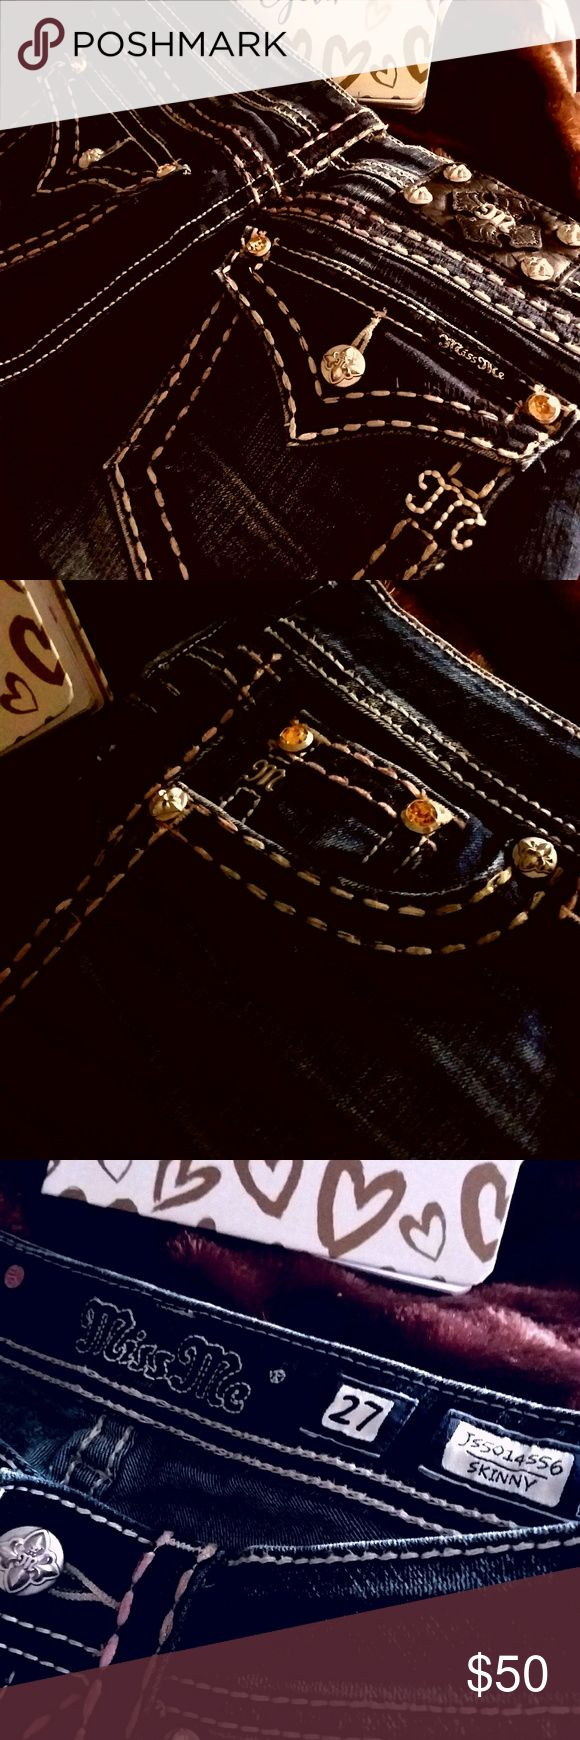 🌟Miss Me BRAND NEW GOLDEN GEMS JEANS 🌟SZ 27 Miss Me BRAND NEW !!!!!   GOLDEN GEMS JEANS DARK DENIM WITH Miss Me's IDEAL AMOUNT OF LIGHT DISTRESS CREASES BELOW THE FRONT POCKETS & UPPER THIGH'S ON FRONT & JUST THEIR HINT OF DISTRESS RIGHT AT THE REAR UNDER THE BACK ORNATE GOLD GEMS ON POCKETS !!!!  THESE ARE THE SKINNY STYLE BUT, NOT AS SKINNY AS SOME STYLES !!!  THESE ARE FROM MY COLLECTION OF MY BRAND NEW JEANS THAT I HAVE BOXES OF WANTING TO PART WITH NOW AS I HAVE TOO MANY FOR JUST ME…